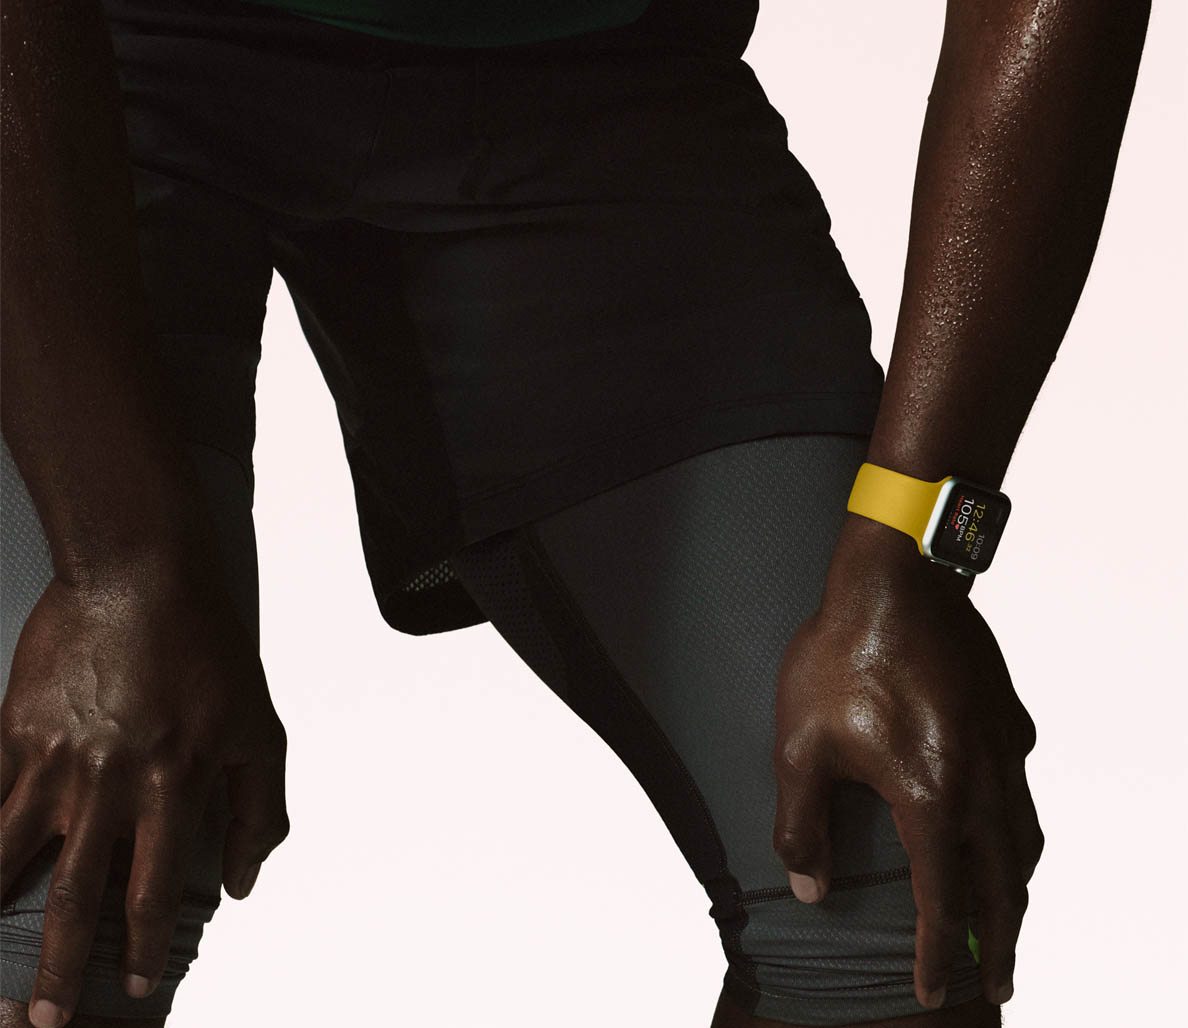 Apple's new nylon band for the Apple Watch.